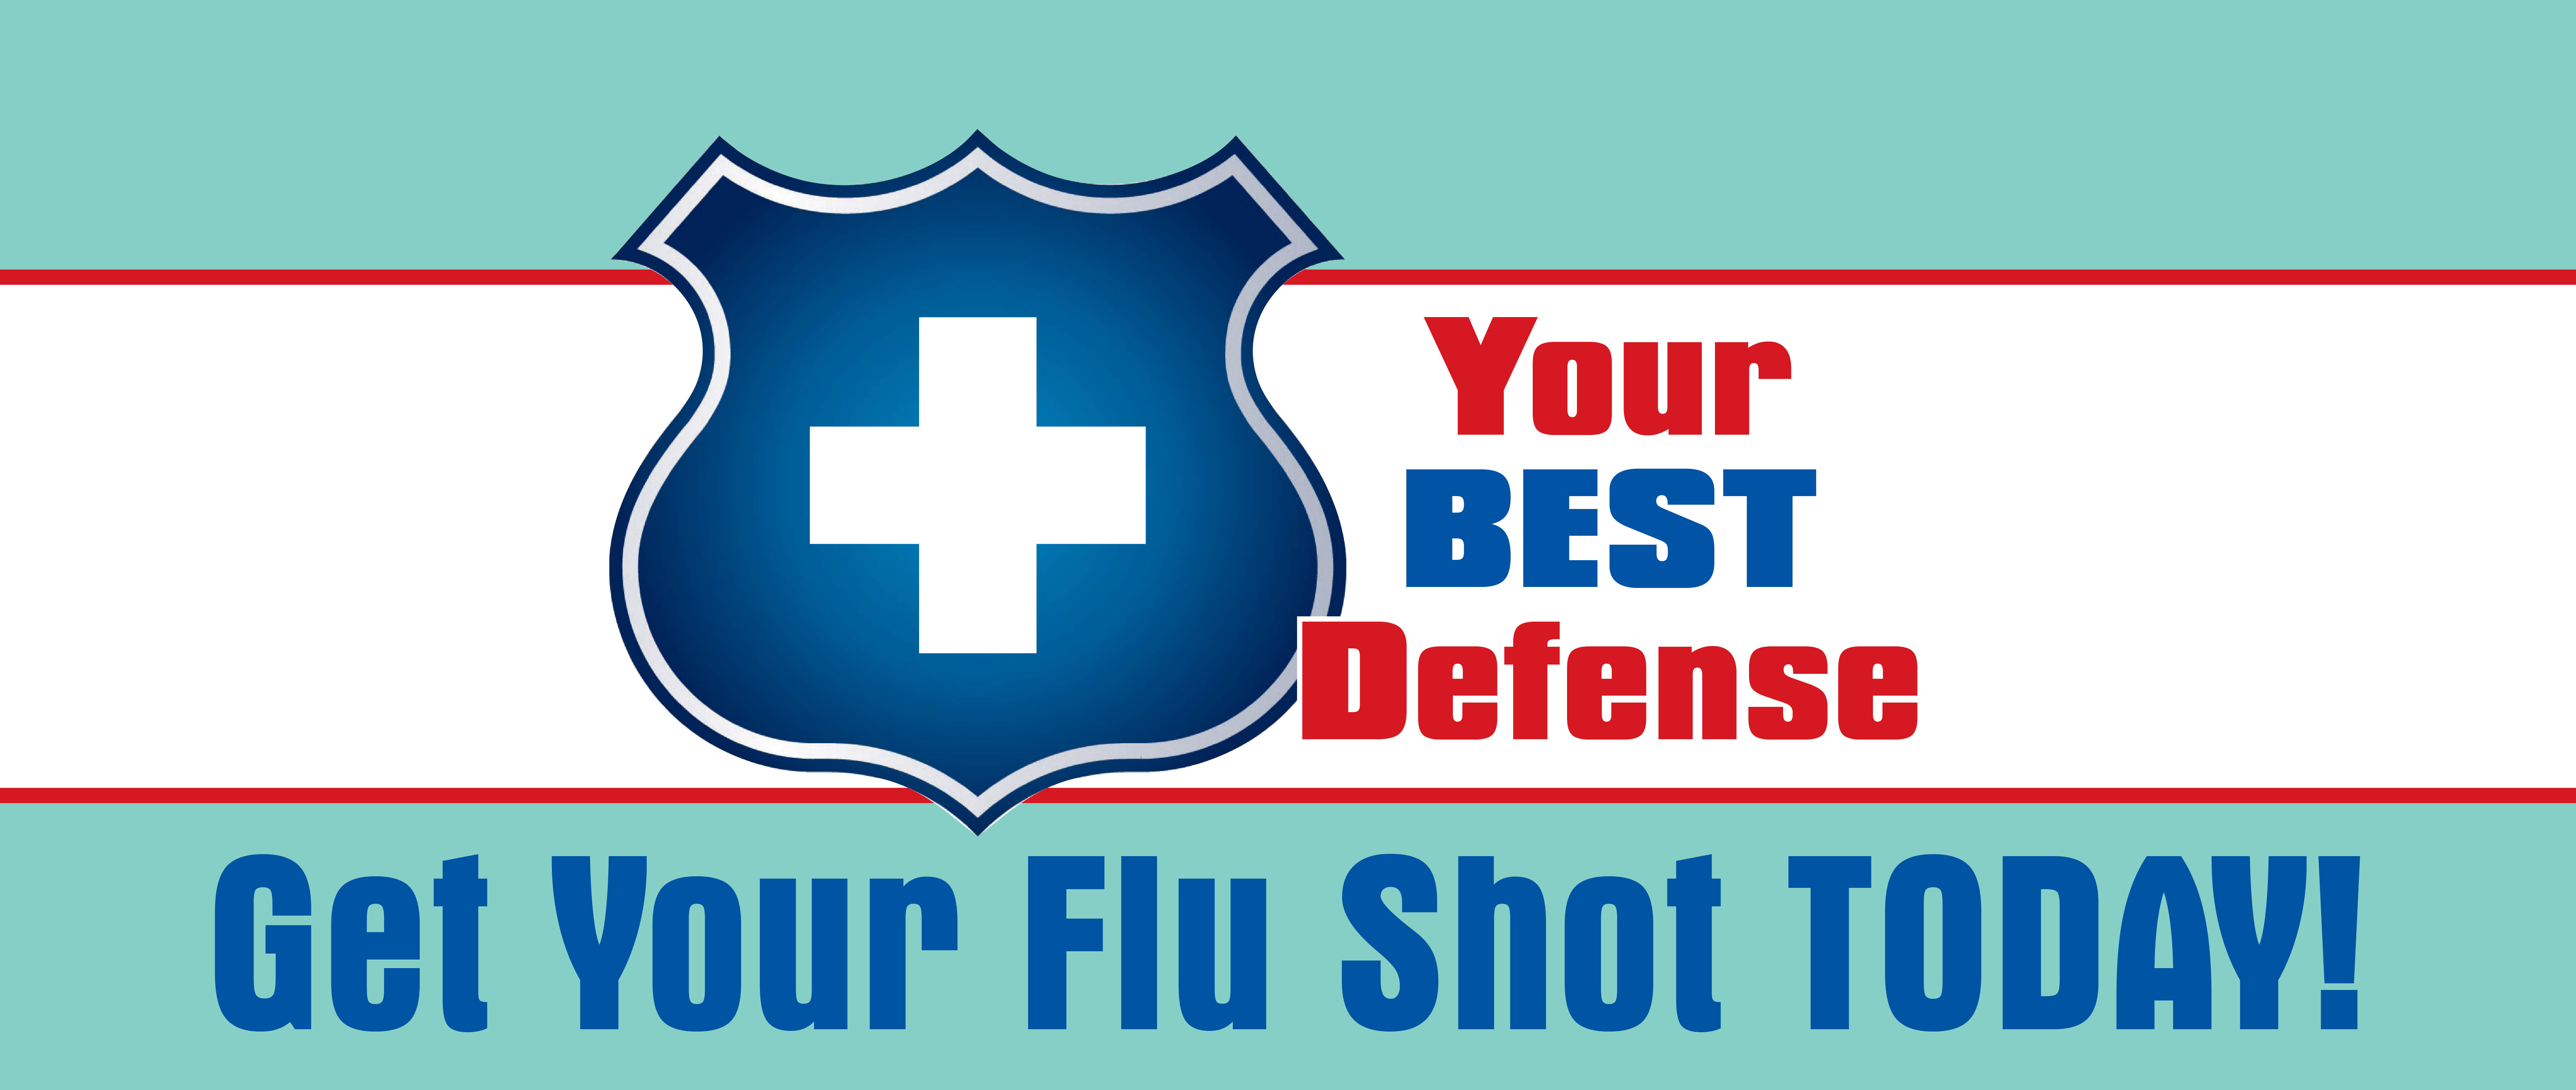 Flu Shots Are Available!